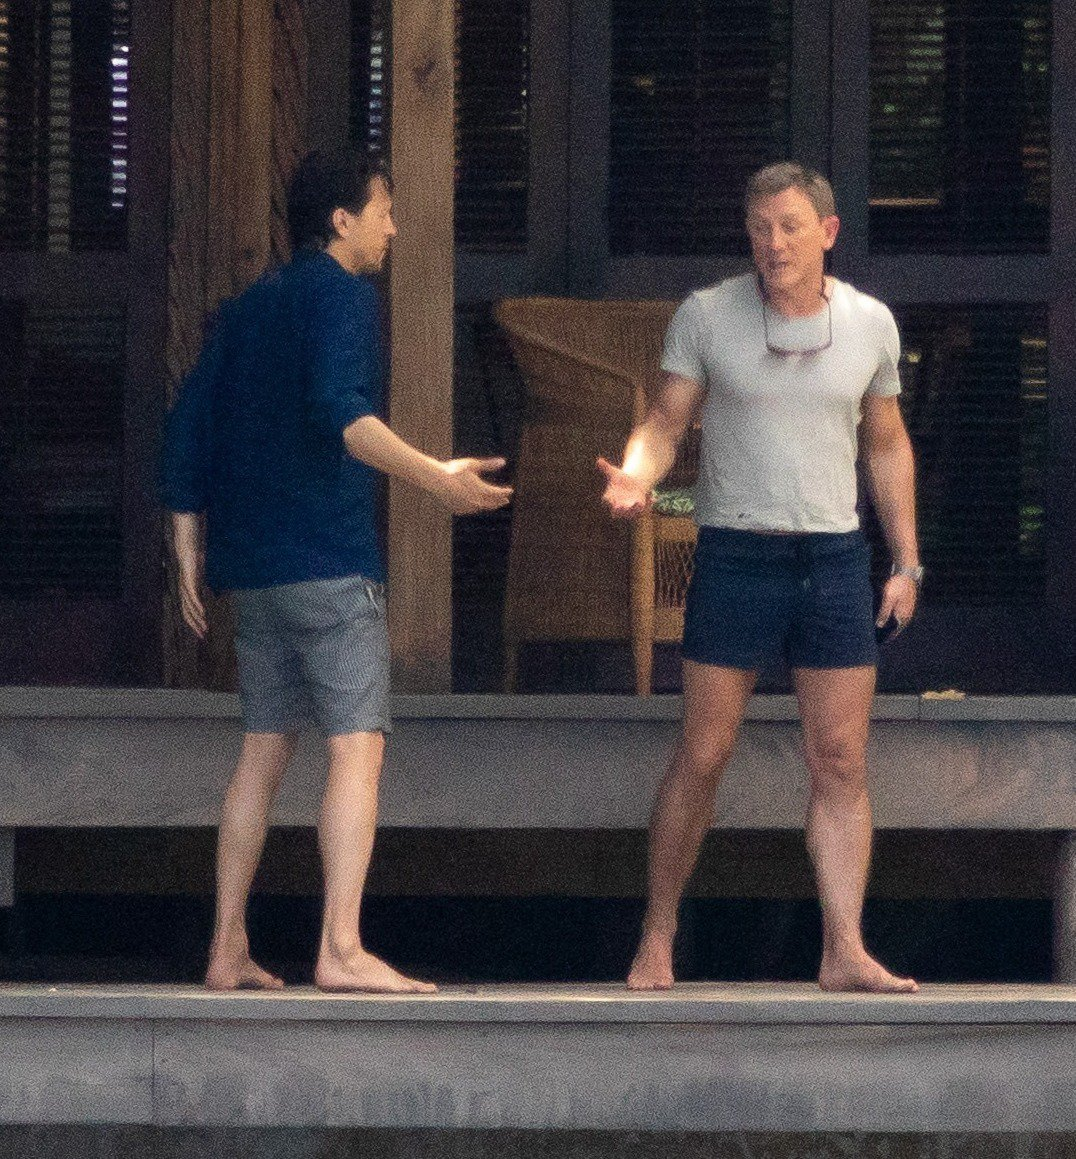 Daniel Craig has a heated discussion during a break in filming with director Cary Joji Fukunaga on the set of new Bond movie in Jamaica